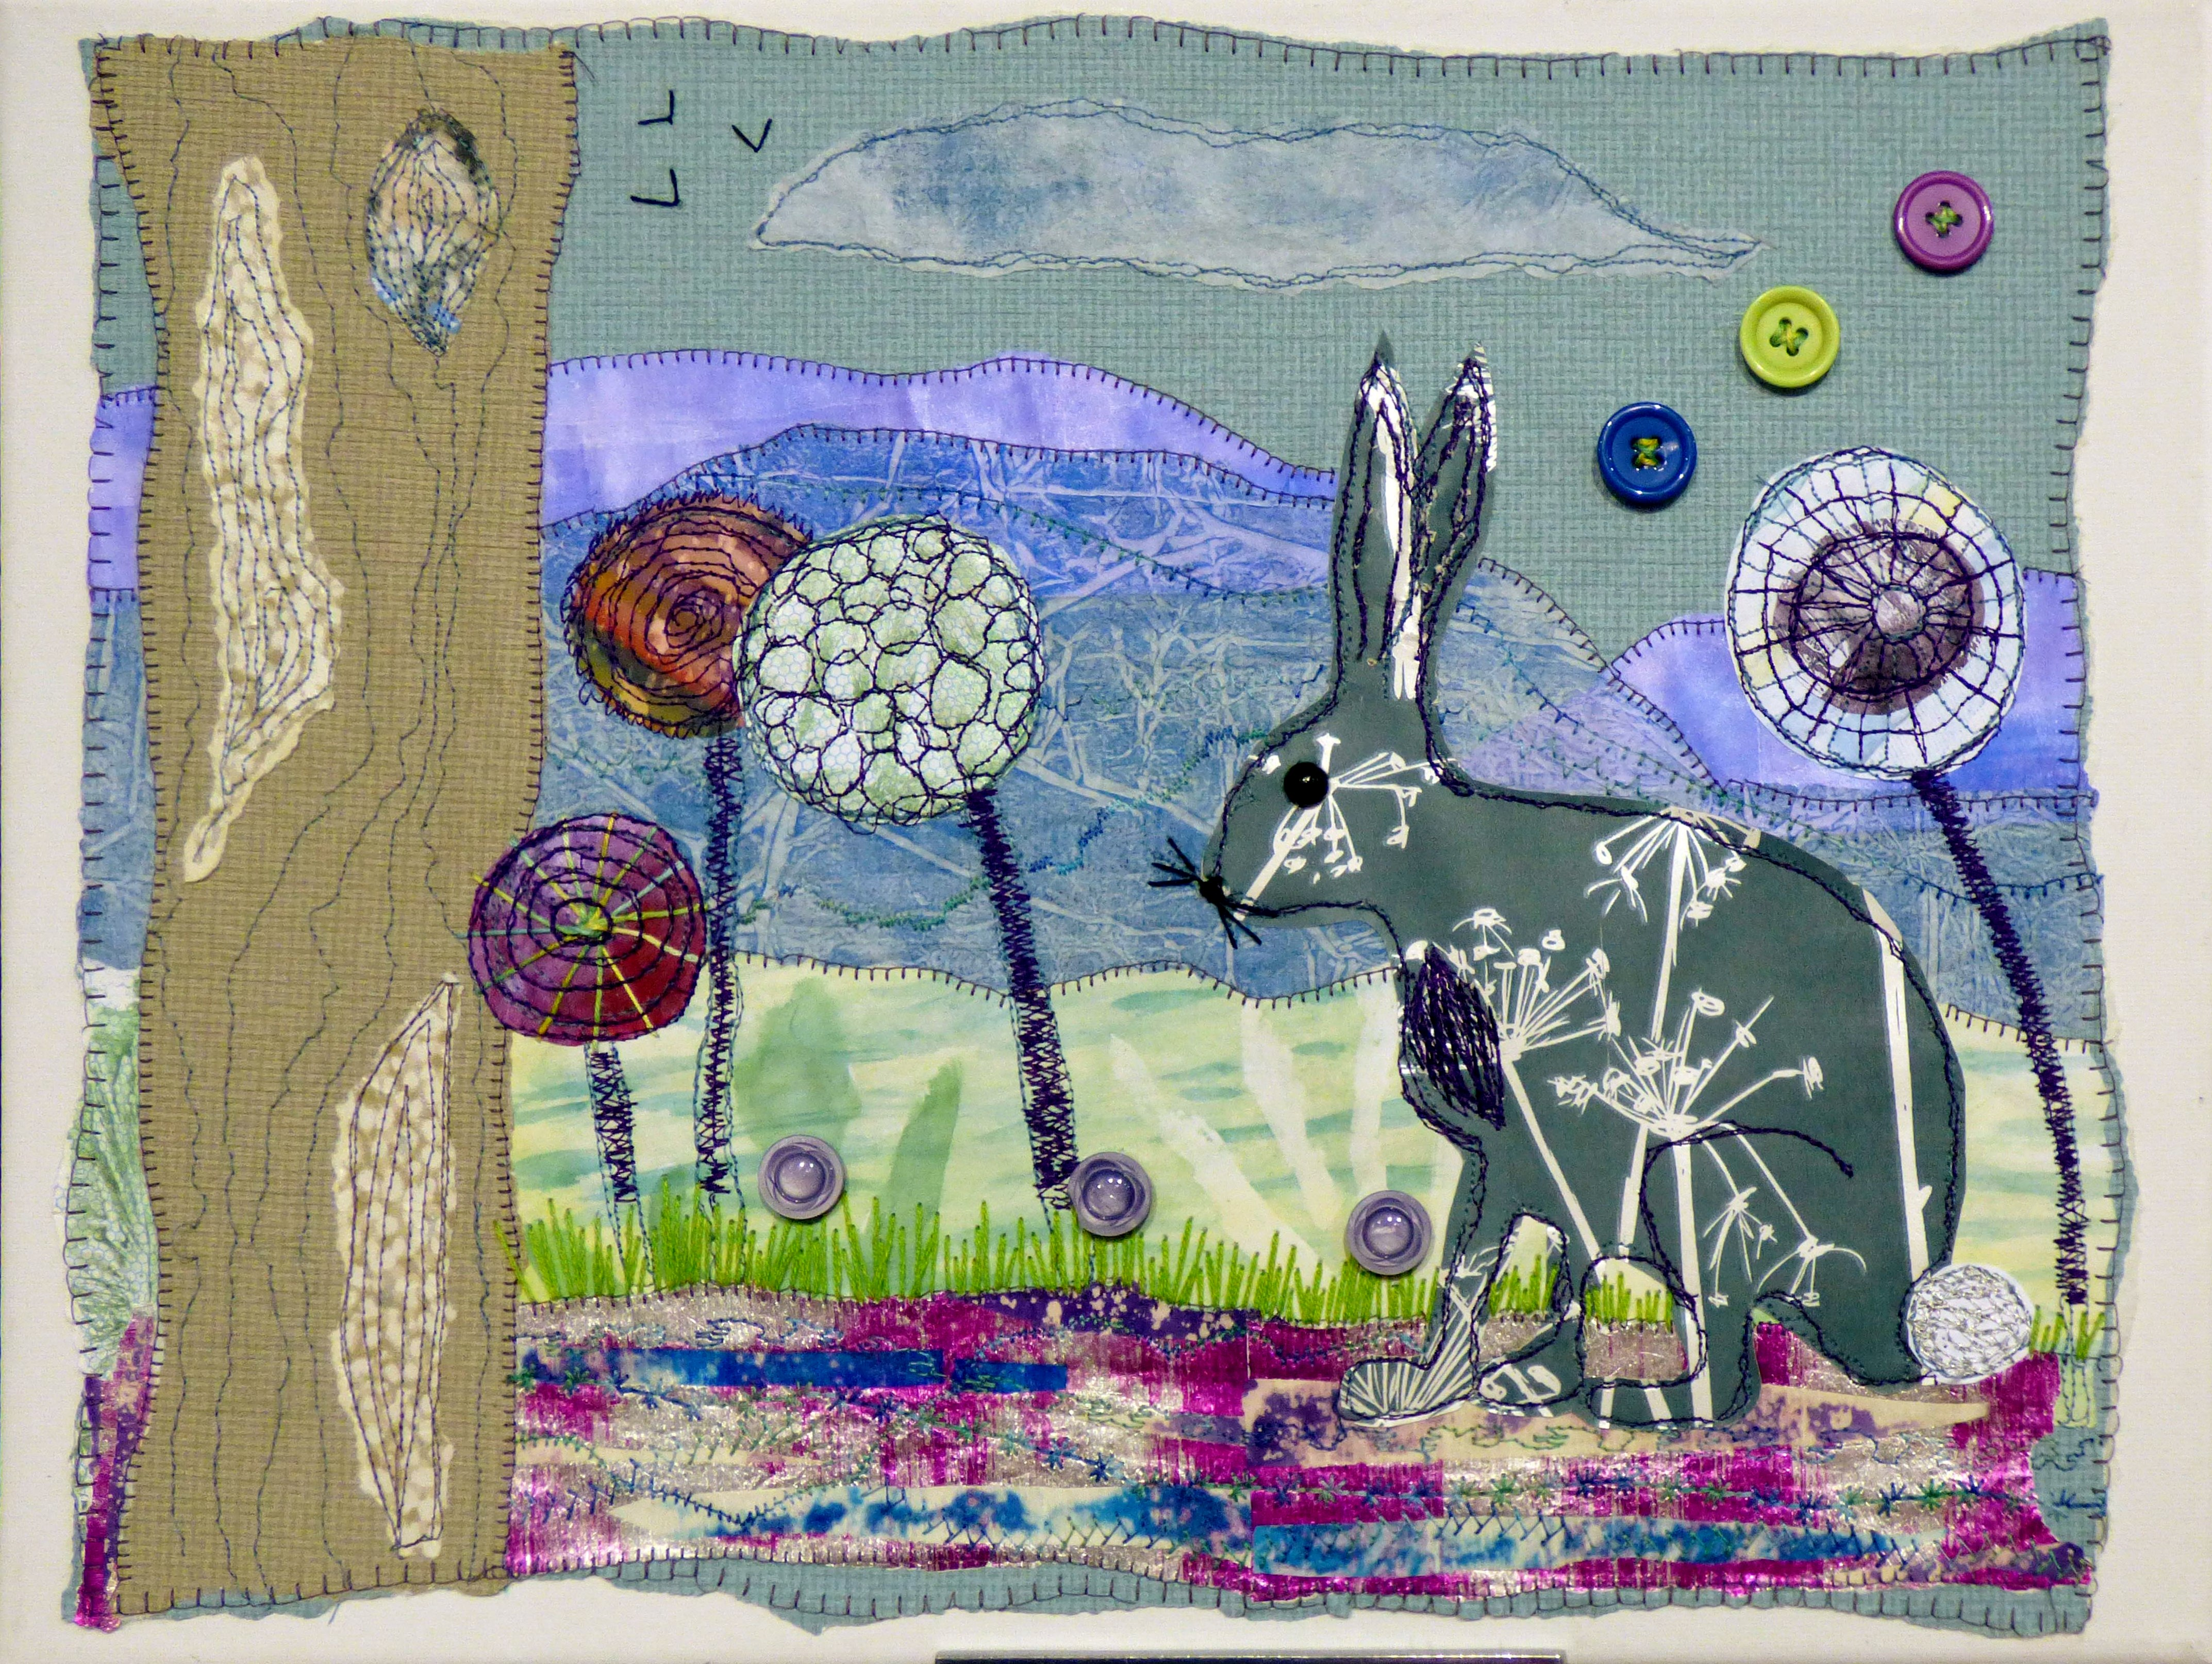 HAIR TODAY AND GONE TOMORROW by Roselie Gardner, N.Wales EG, hand & machine stitched embellished paper collage